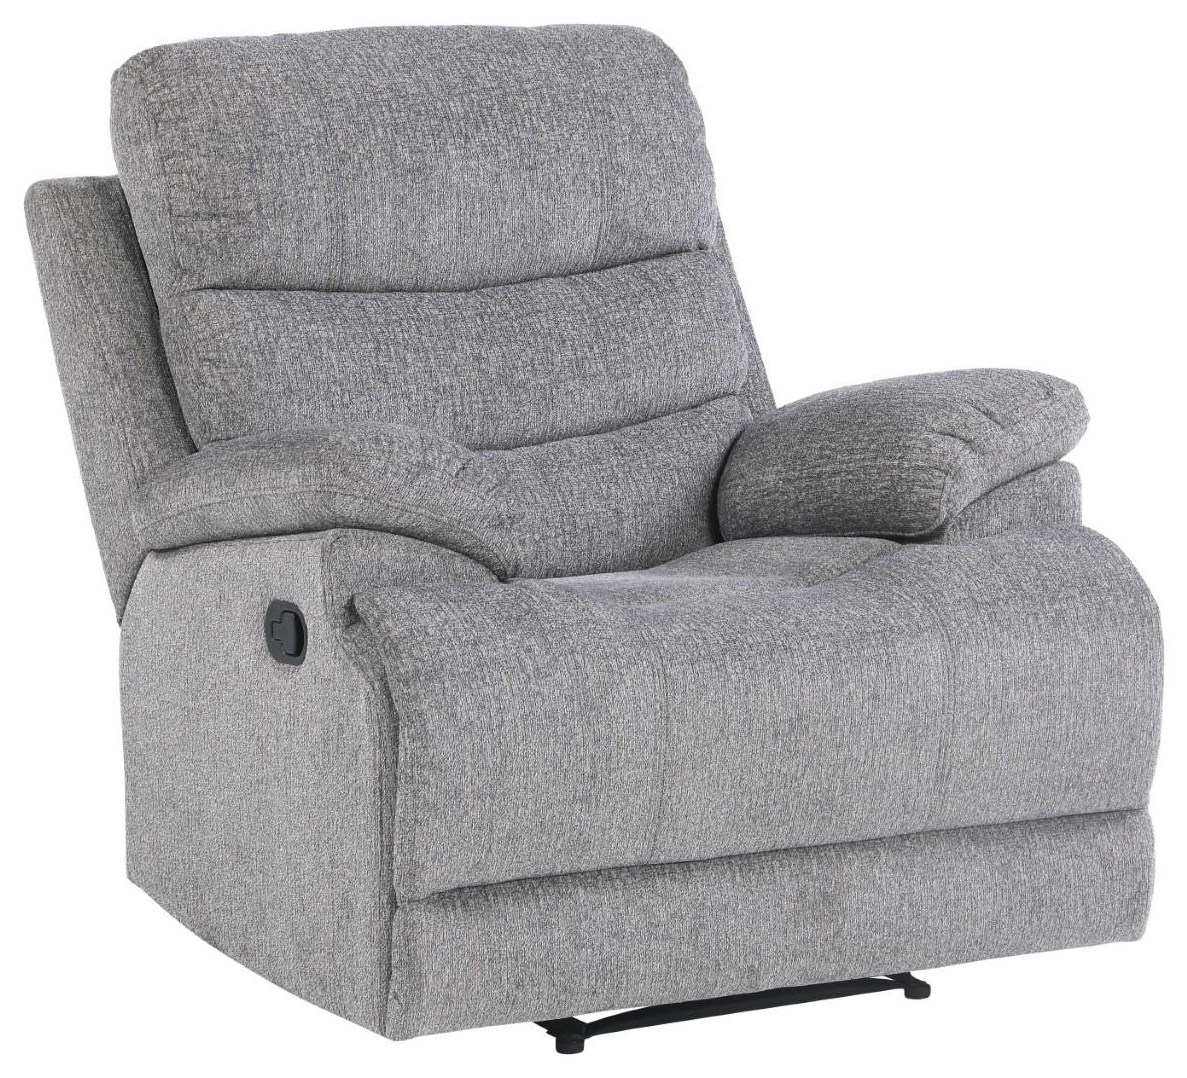 Kelso Glider Recliner by Home Style at Walker's Furniture